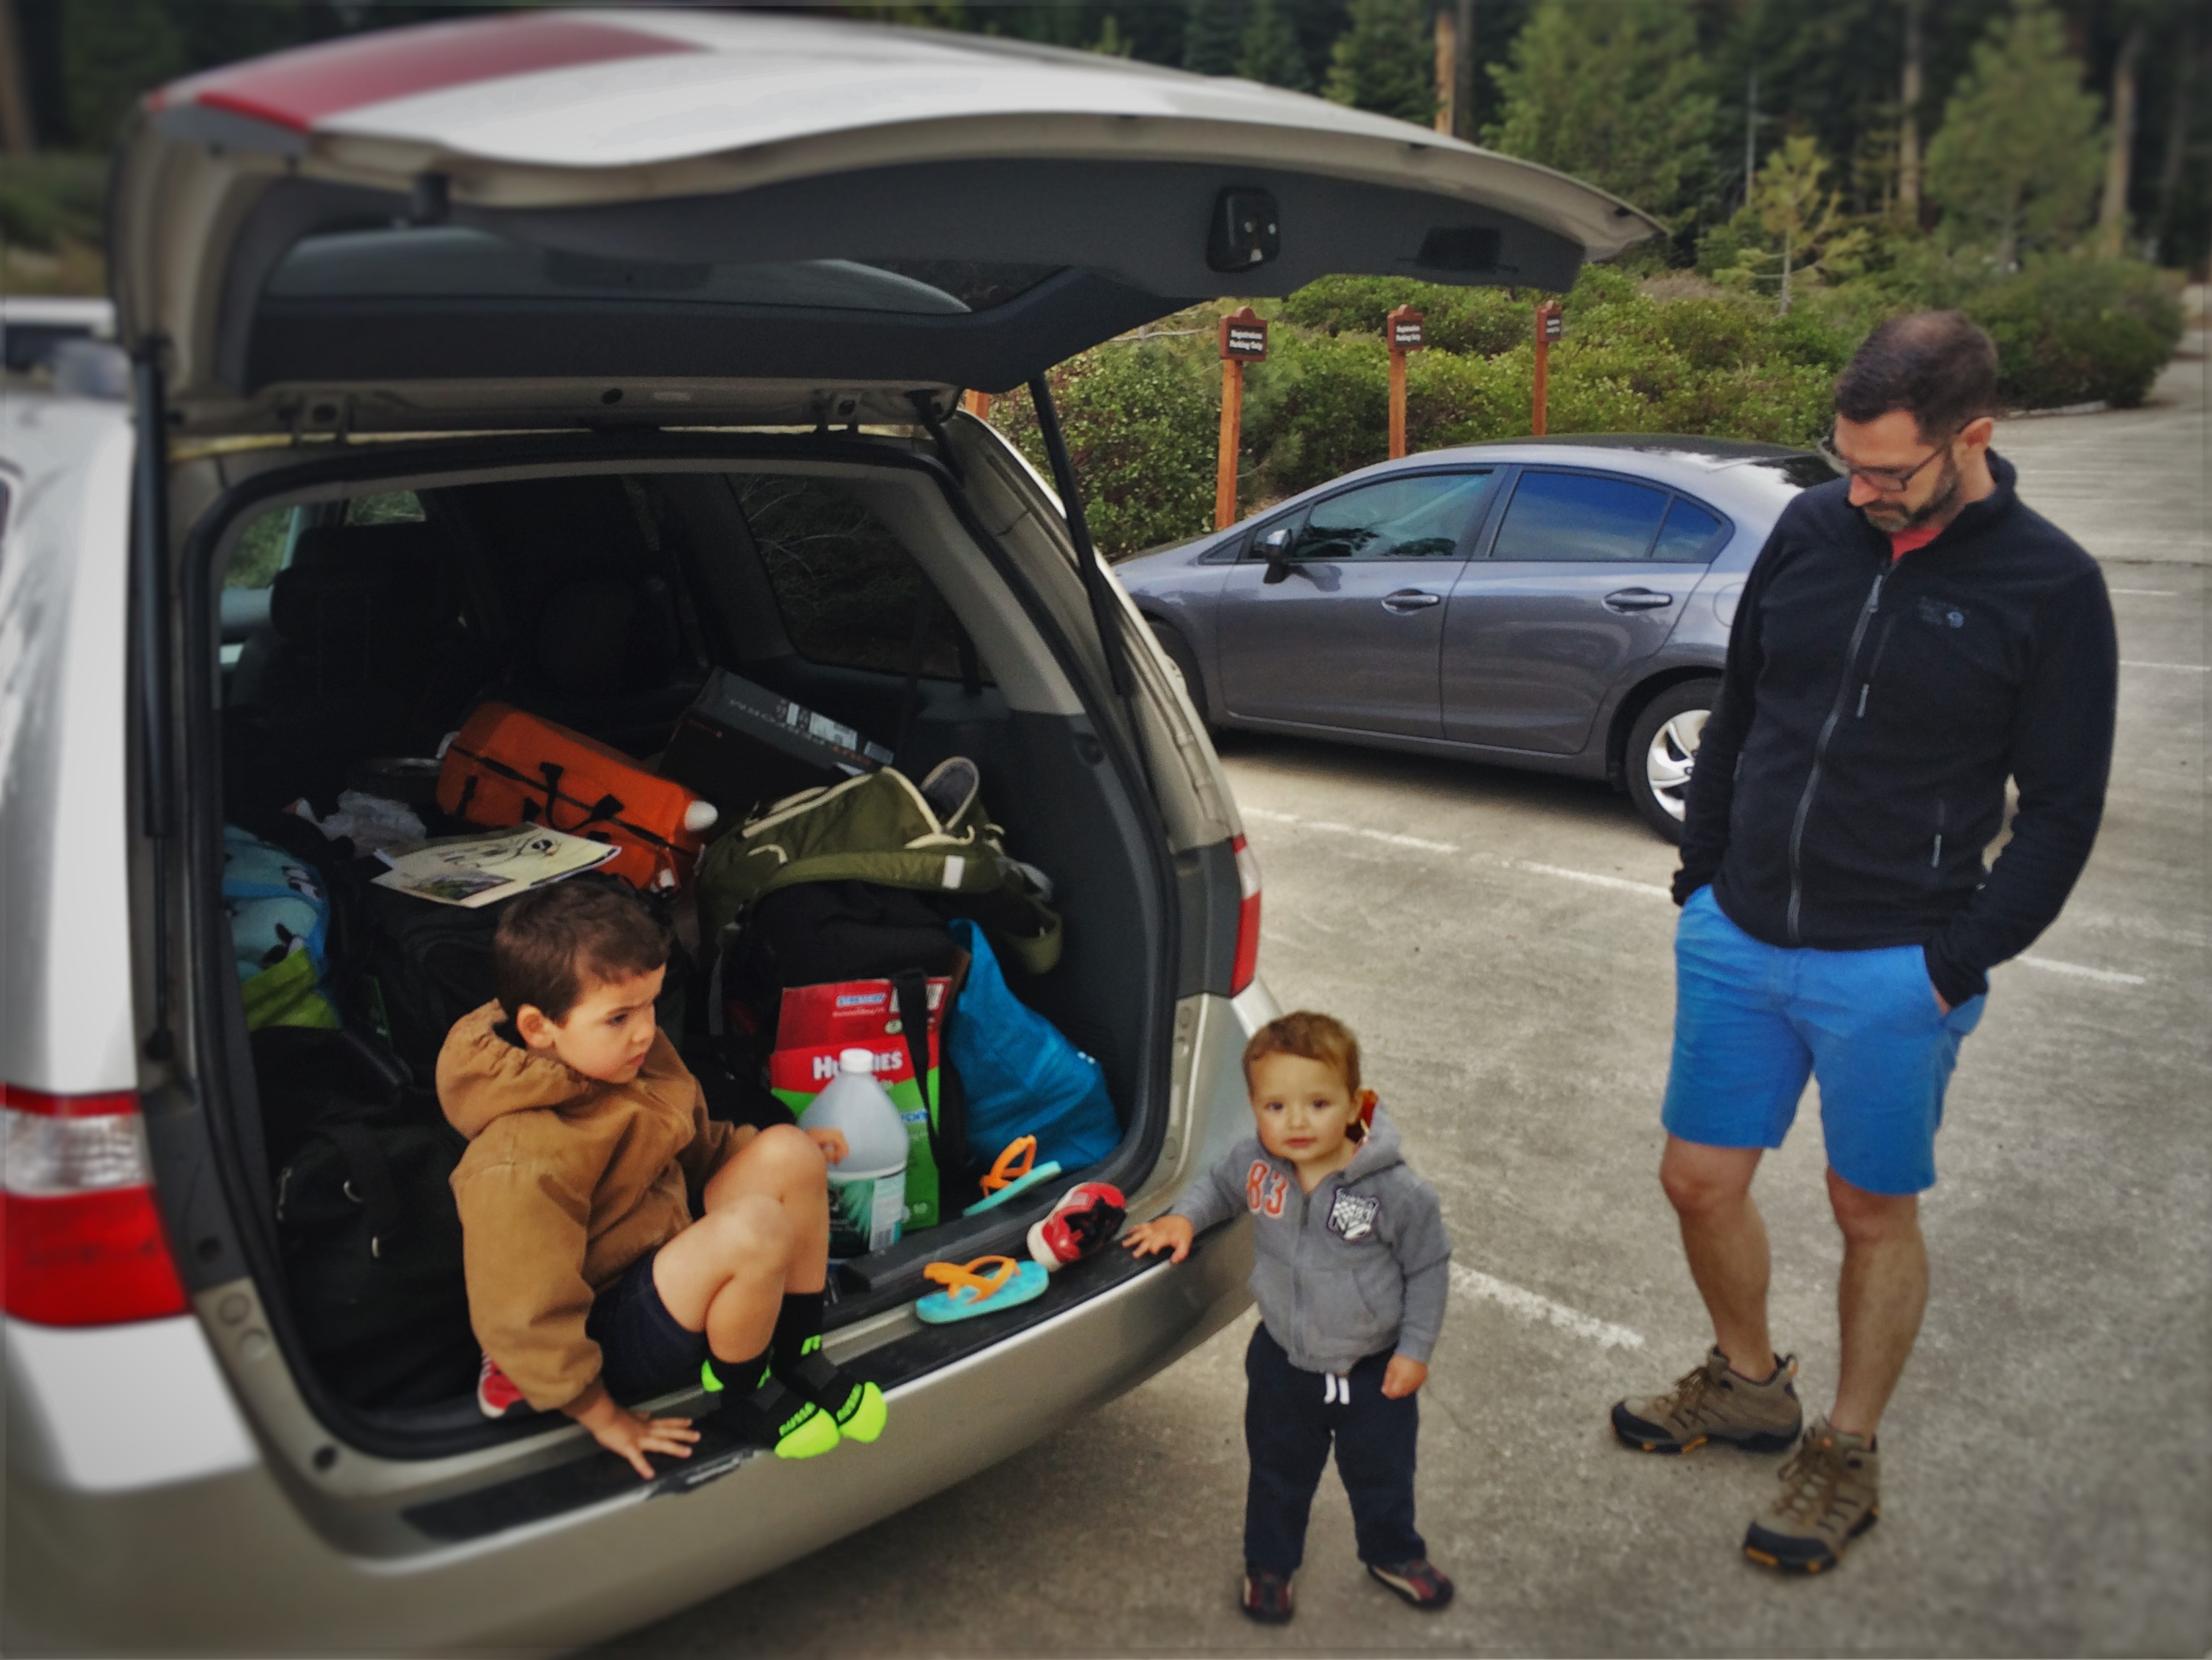 Chris Taylor and Dudes unloading car at Wuksachi Lodge in Sequoia National Park 1